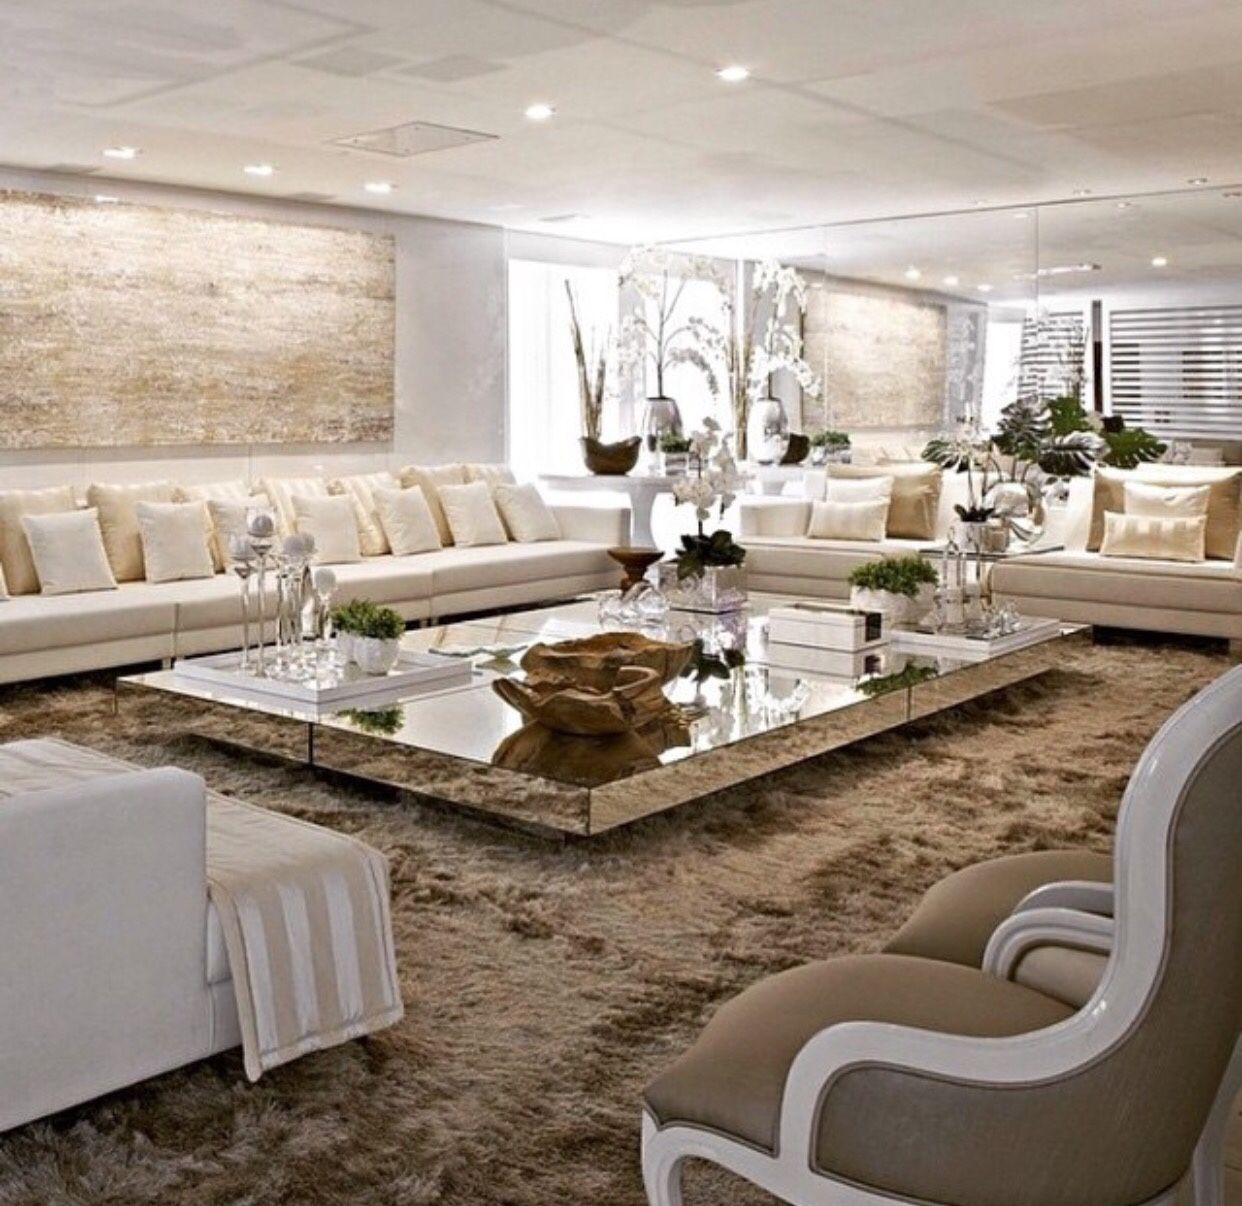 Luxury Living Room Love The Coffee Table Wishful Thinking Things I Would